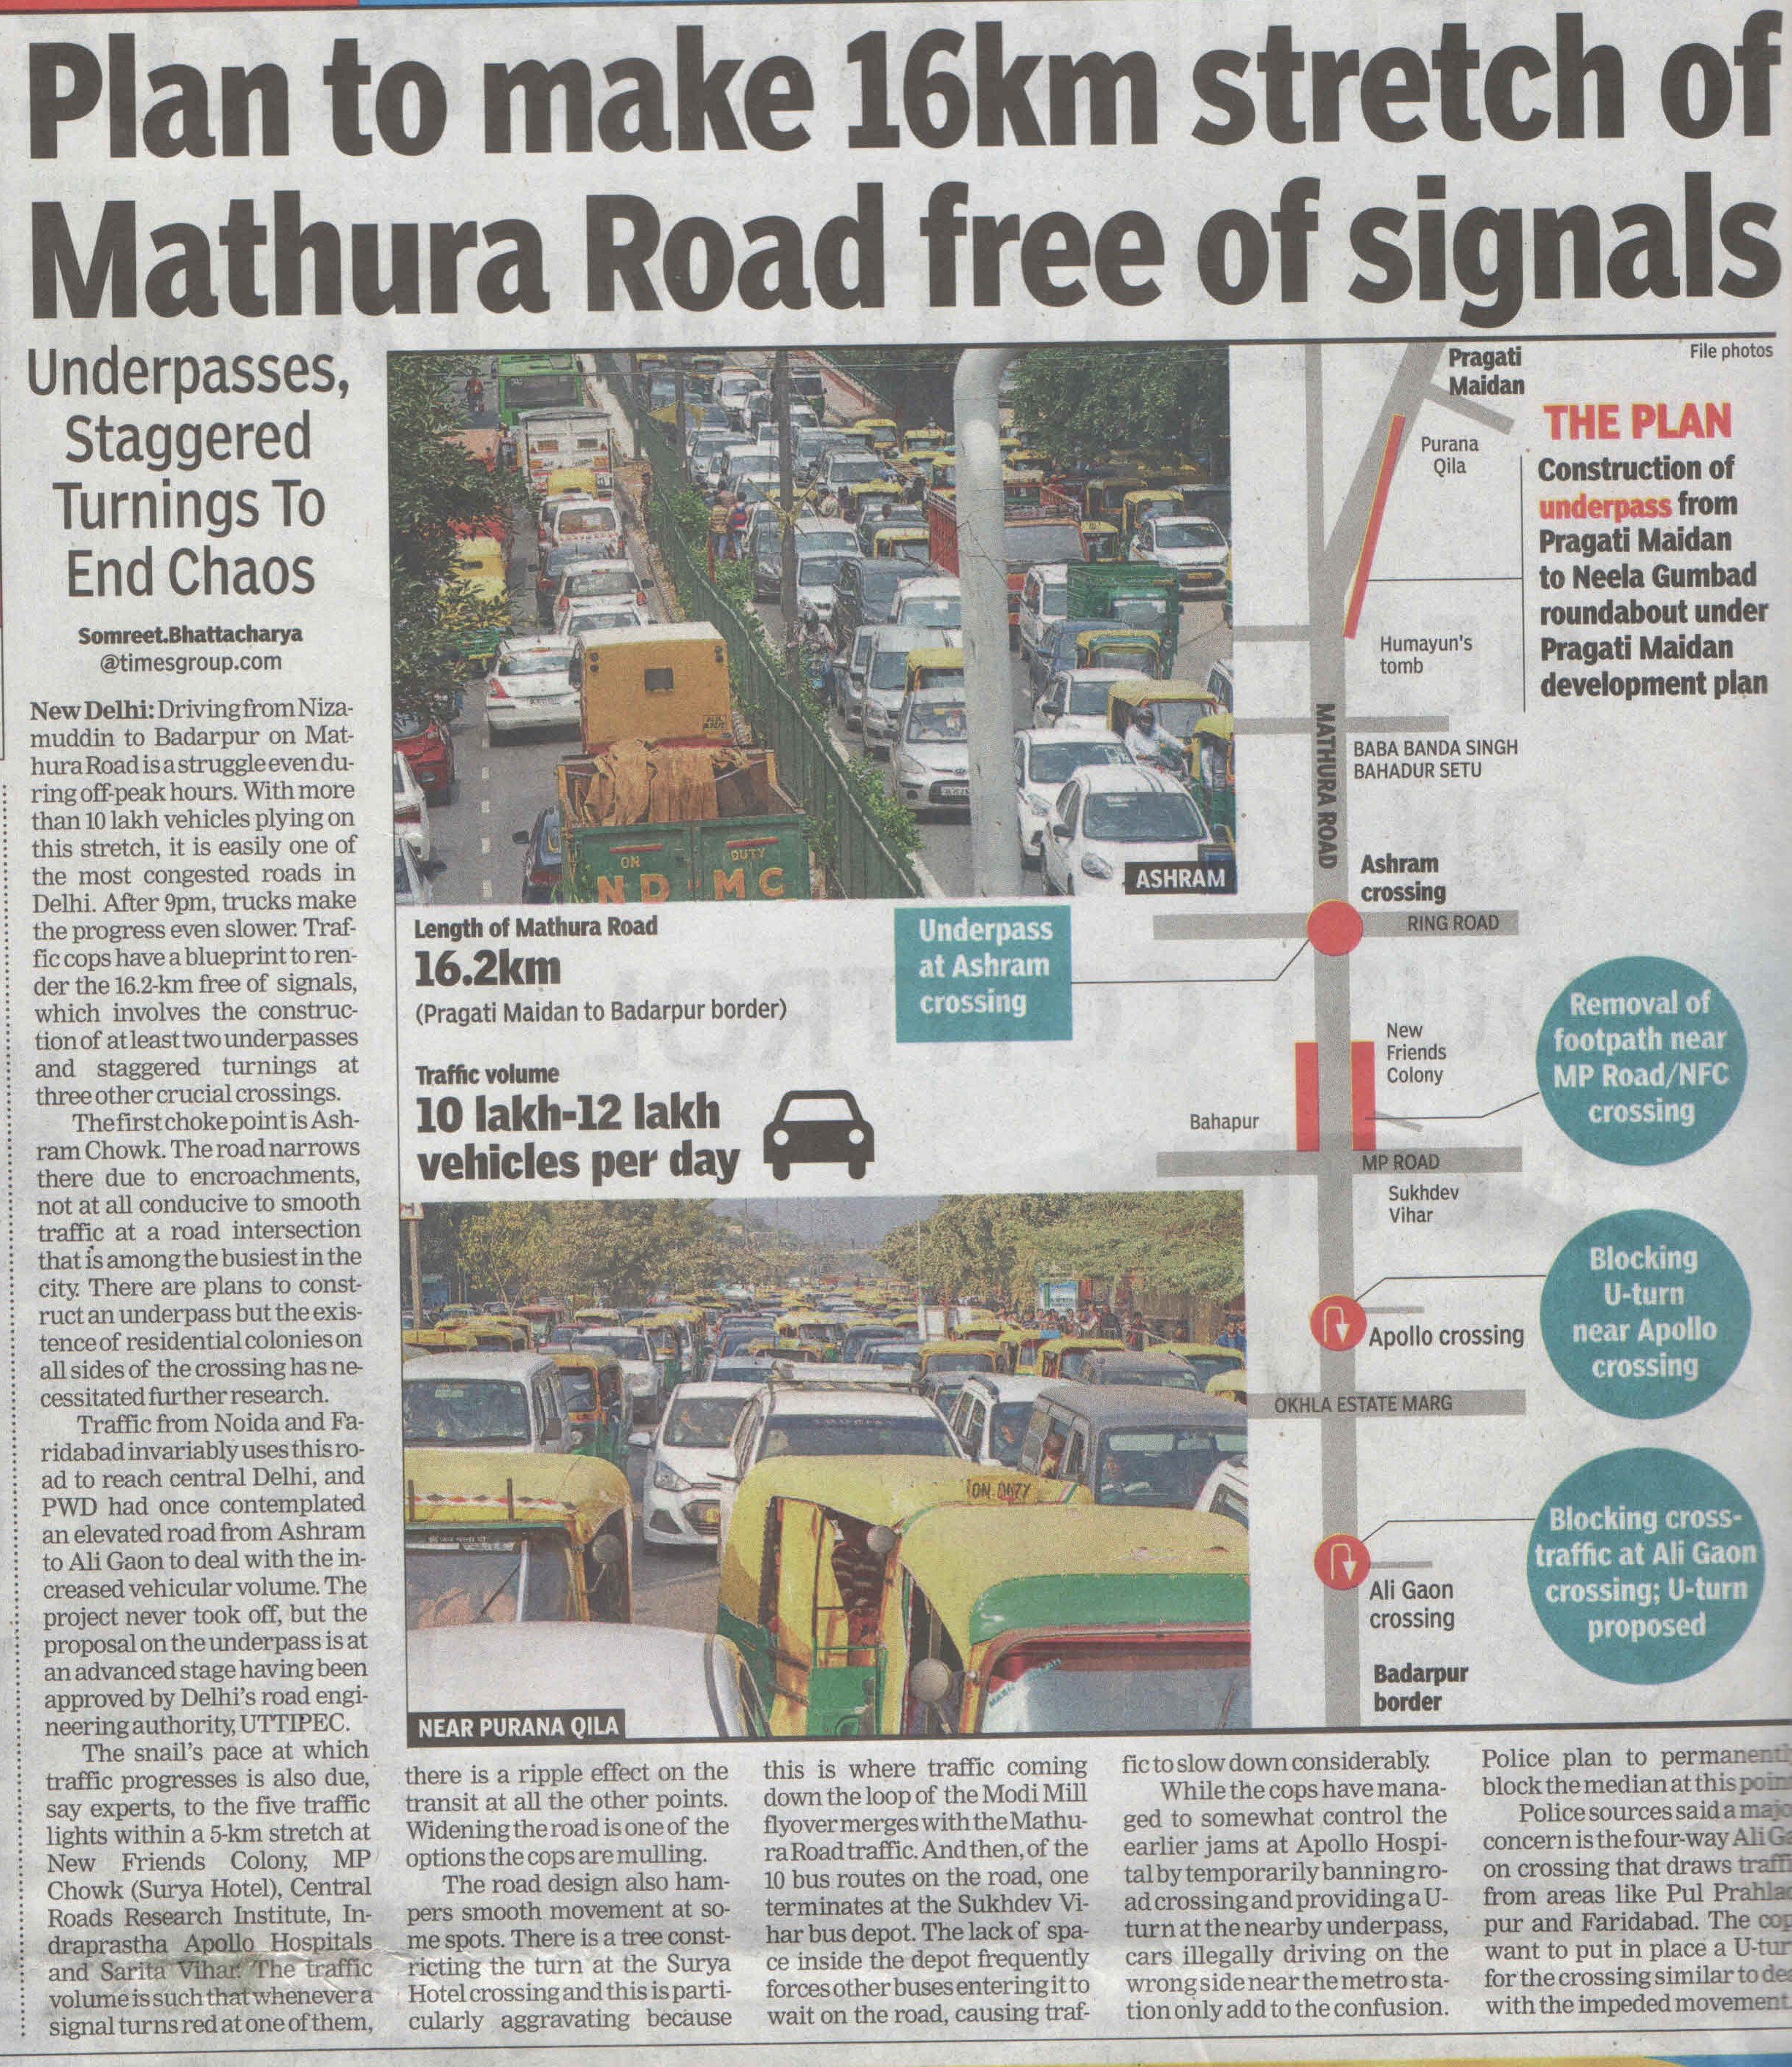 Plan to make 16 Km stretch of Mathura Road free of signals